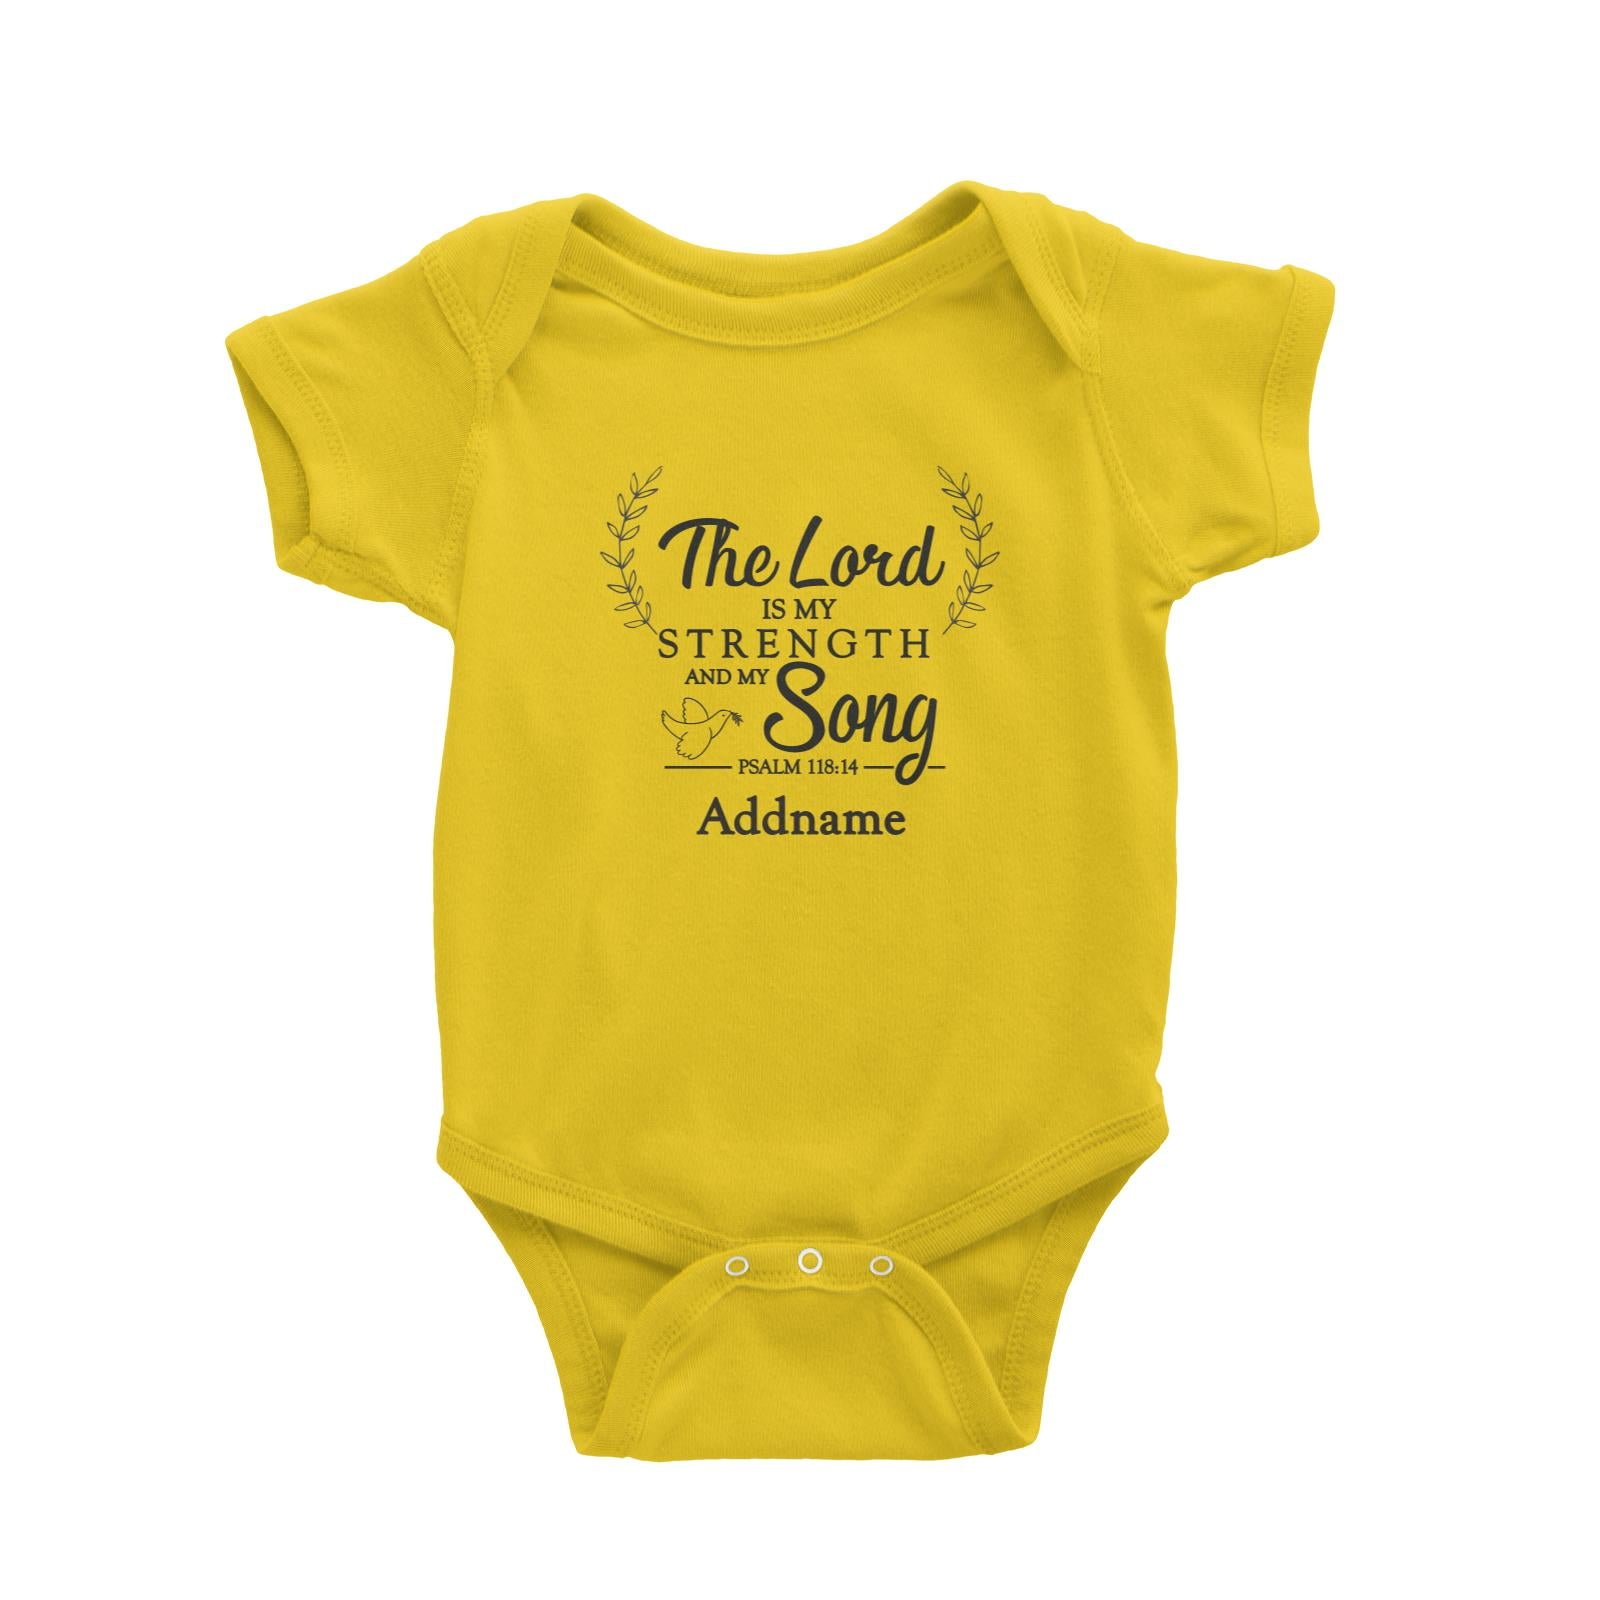 Christian Series The Lord Is My Strength Song Psalm 118.14 Addname Baby Romper